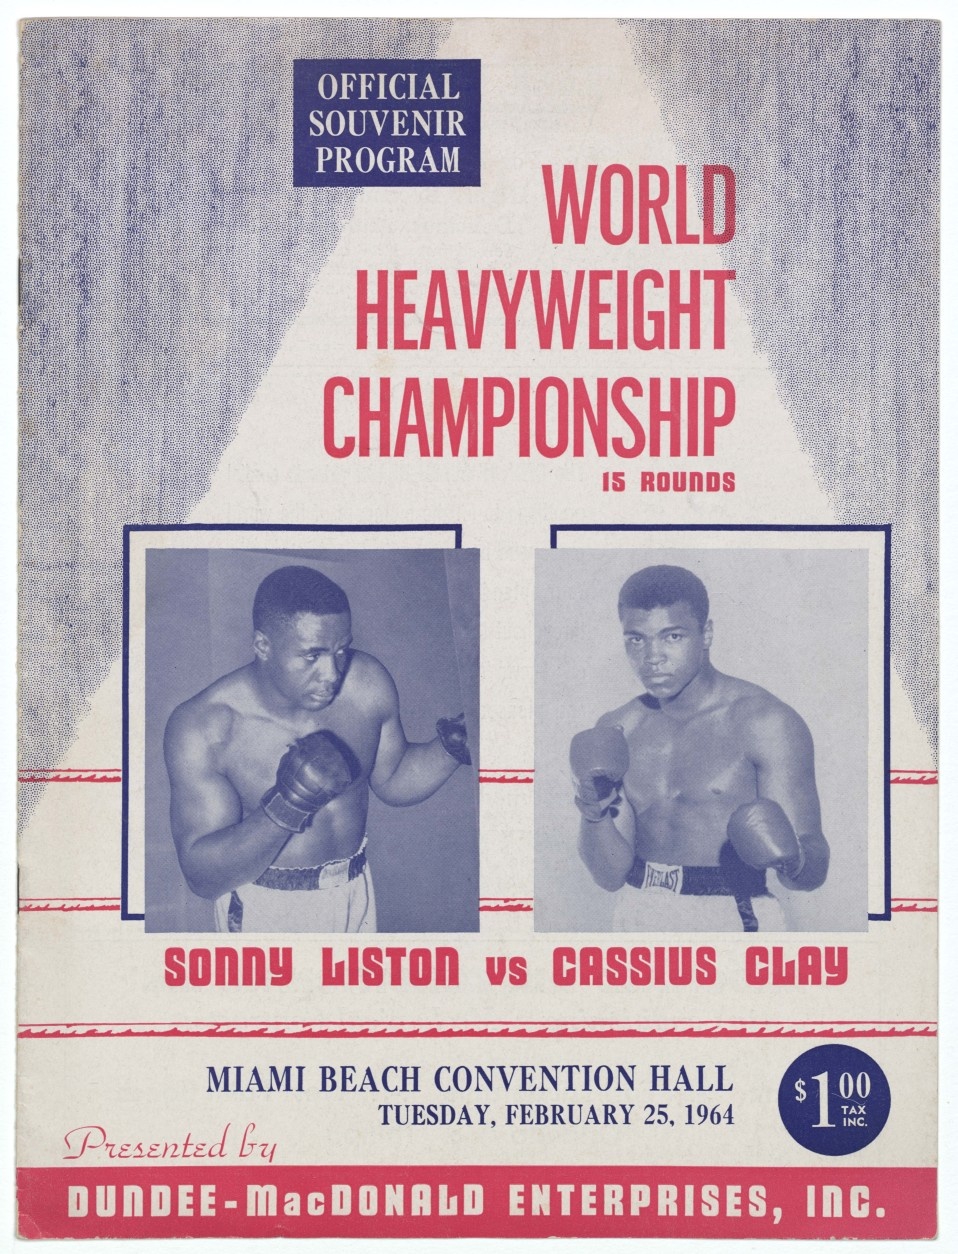 Official souvenir program of the World Heavyweight Championship of Sonny Liston versus Cassius Clay (Muhammad Ali). (Courtesy Collection of the Smithsonian National Museum of African American History and Culture)